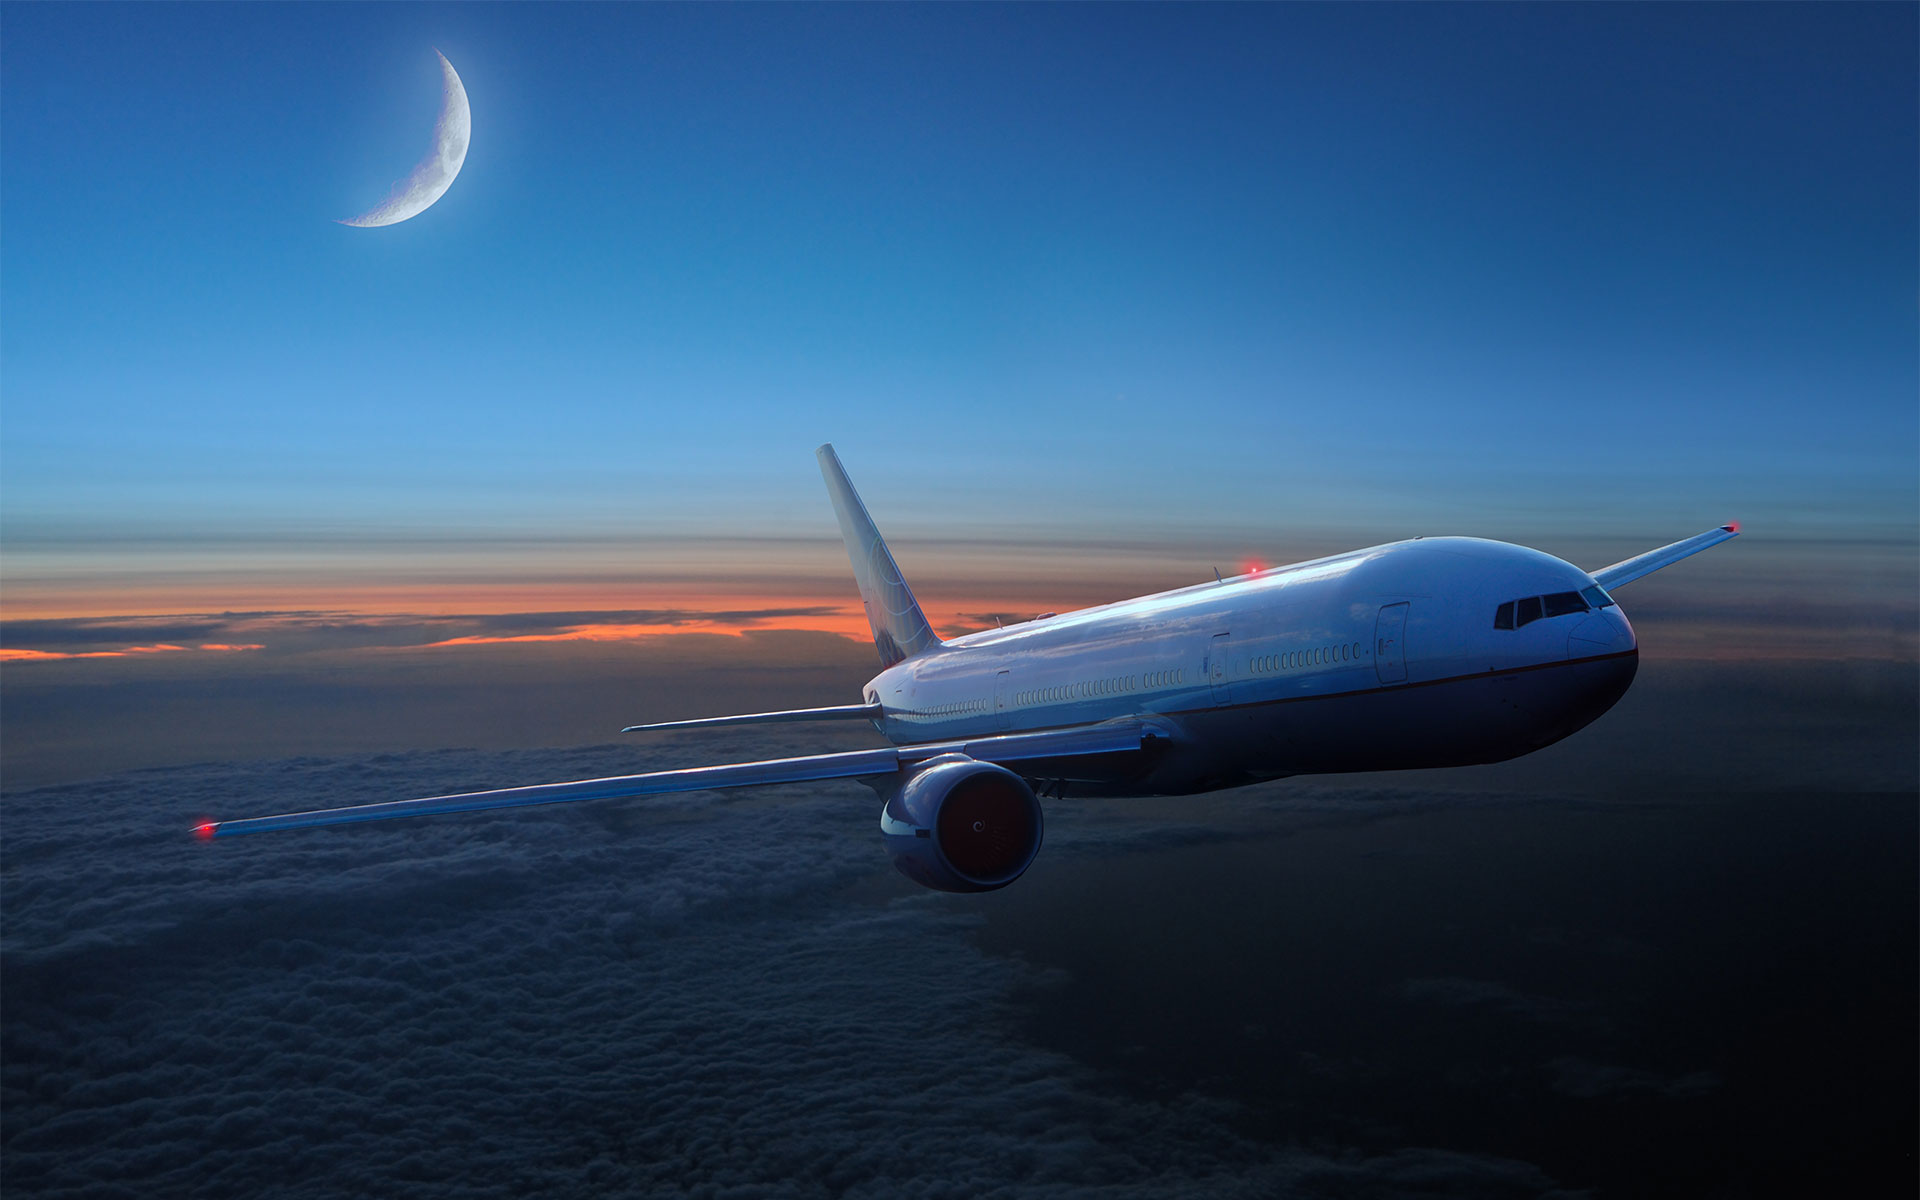 Flight Wallpapers 1920x1200 | B.SCB Wallpapers